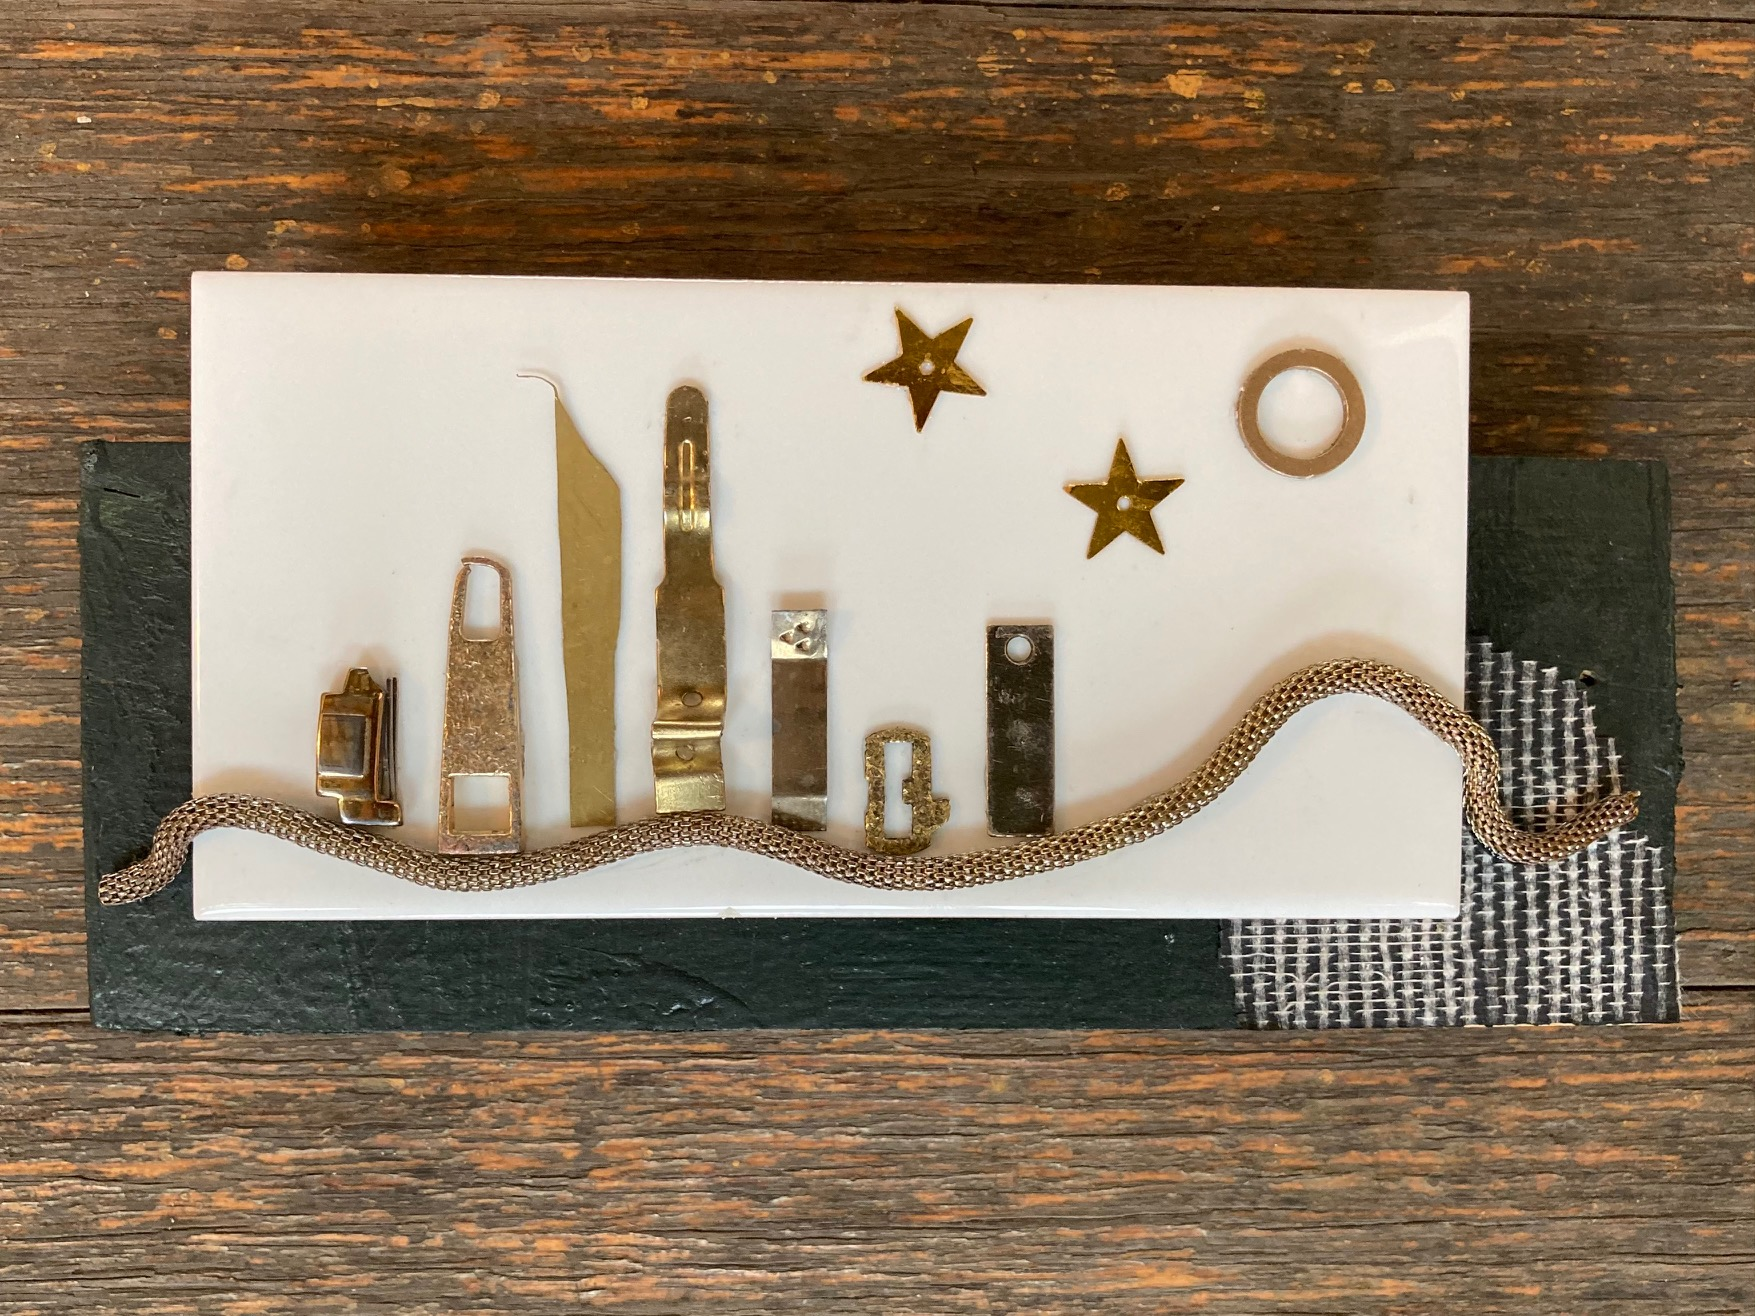 Remember White Night 2 – Miniature Cityscape Wall Sculpture By NancyDee Sculptures